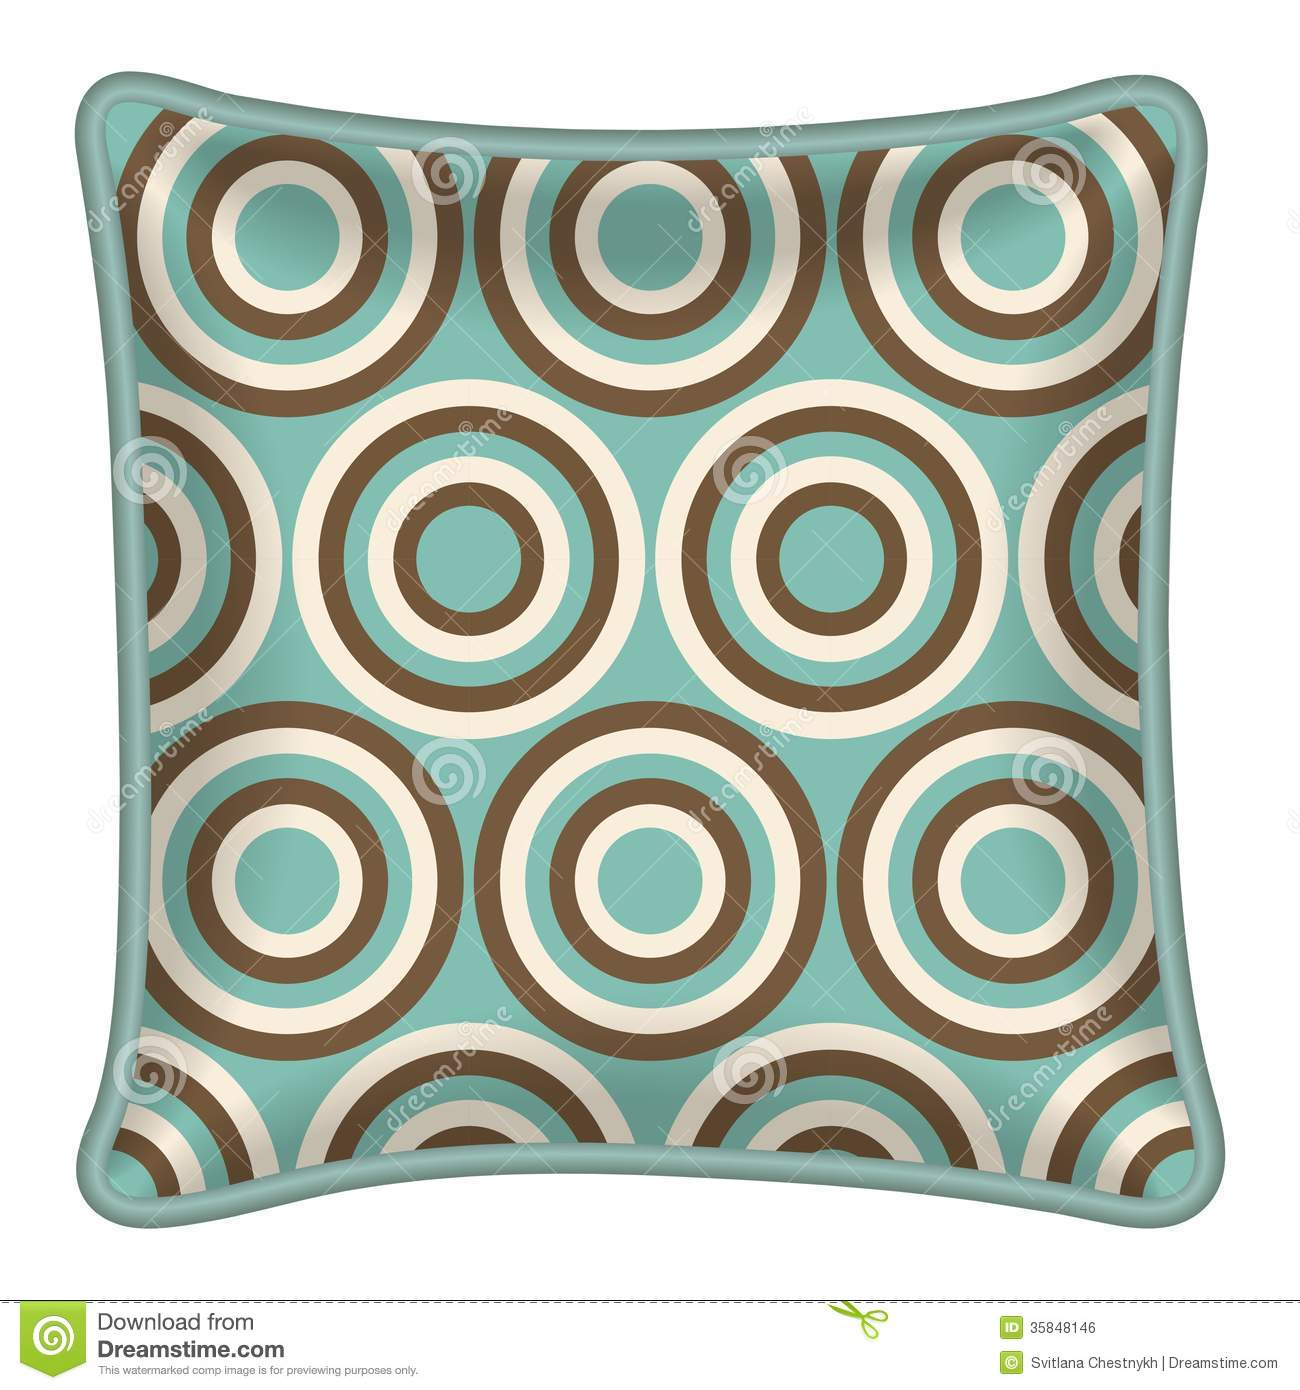 Interior design element decorative pillow with patterned pillowcase